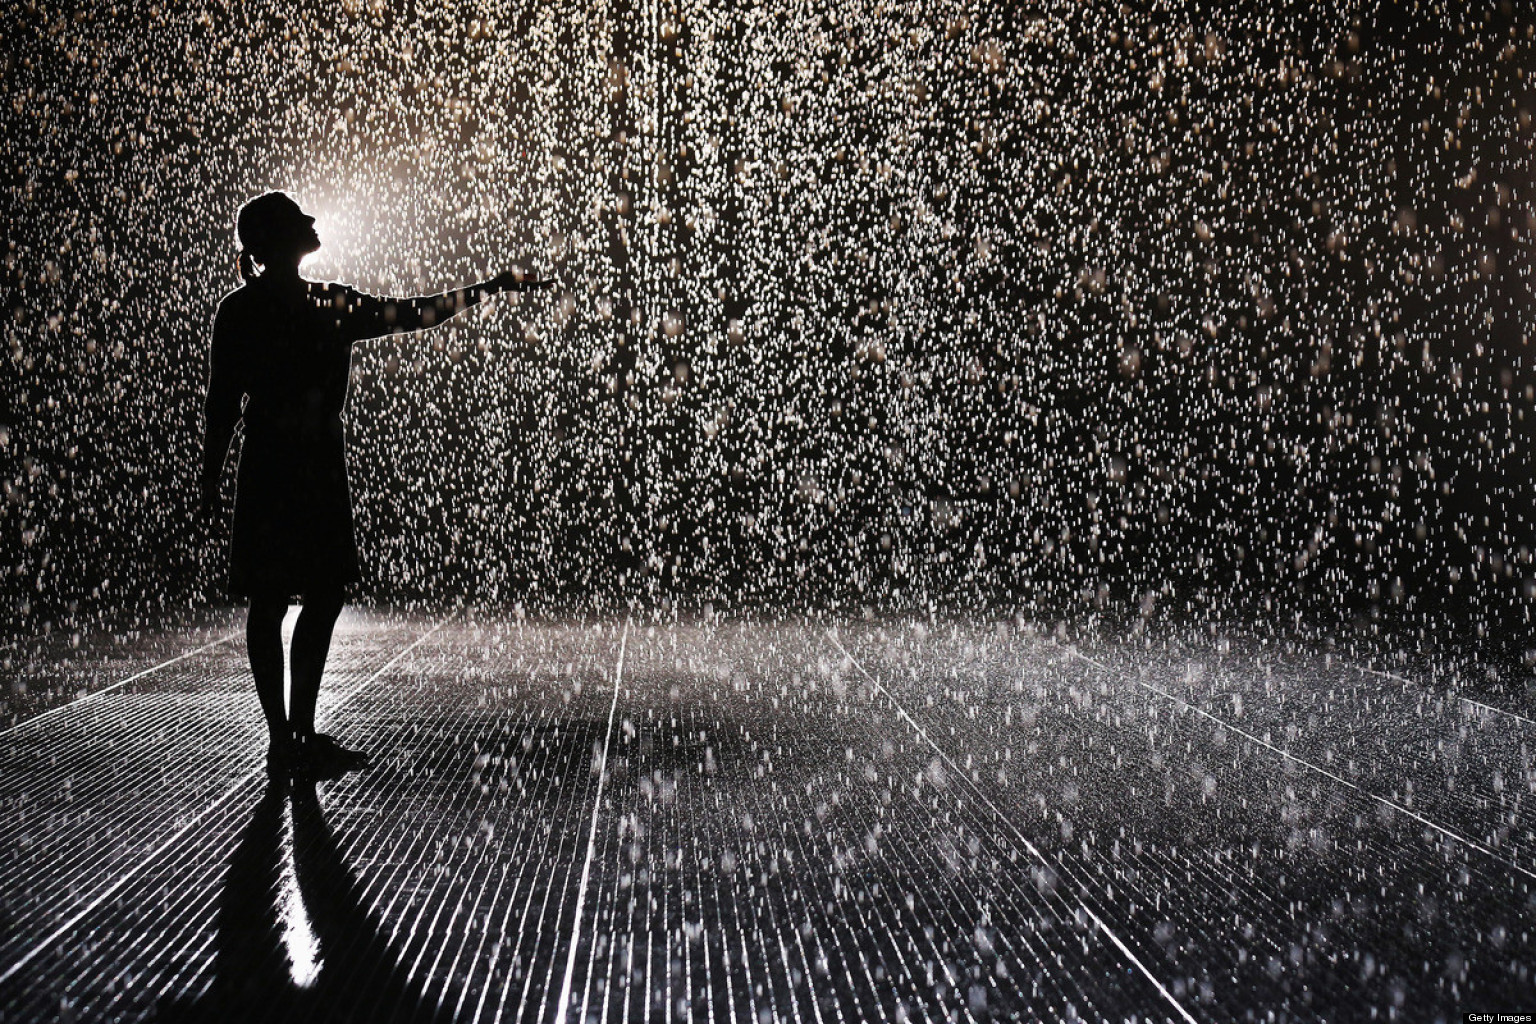 Best Photos 2012: Amazing Photography From Around The